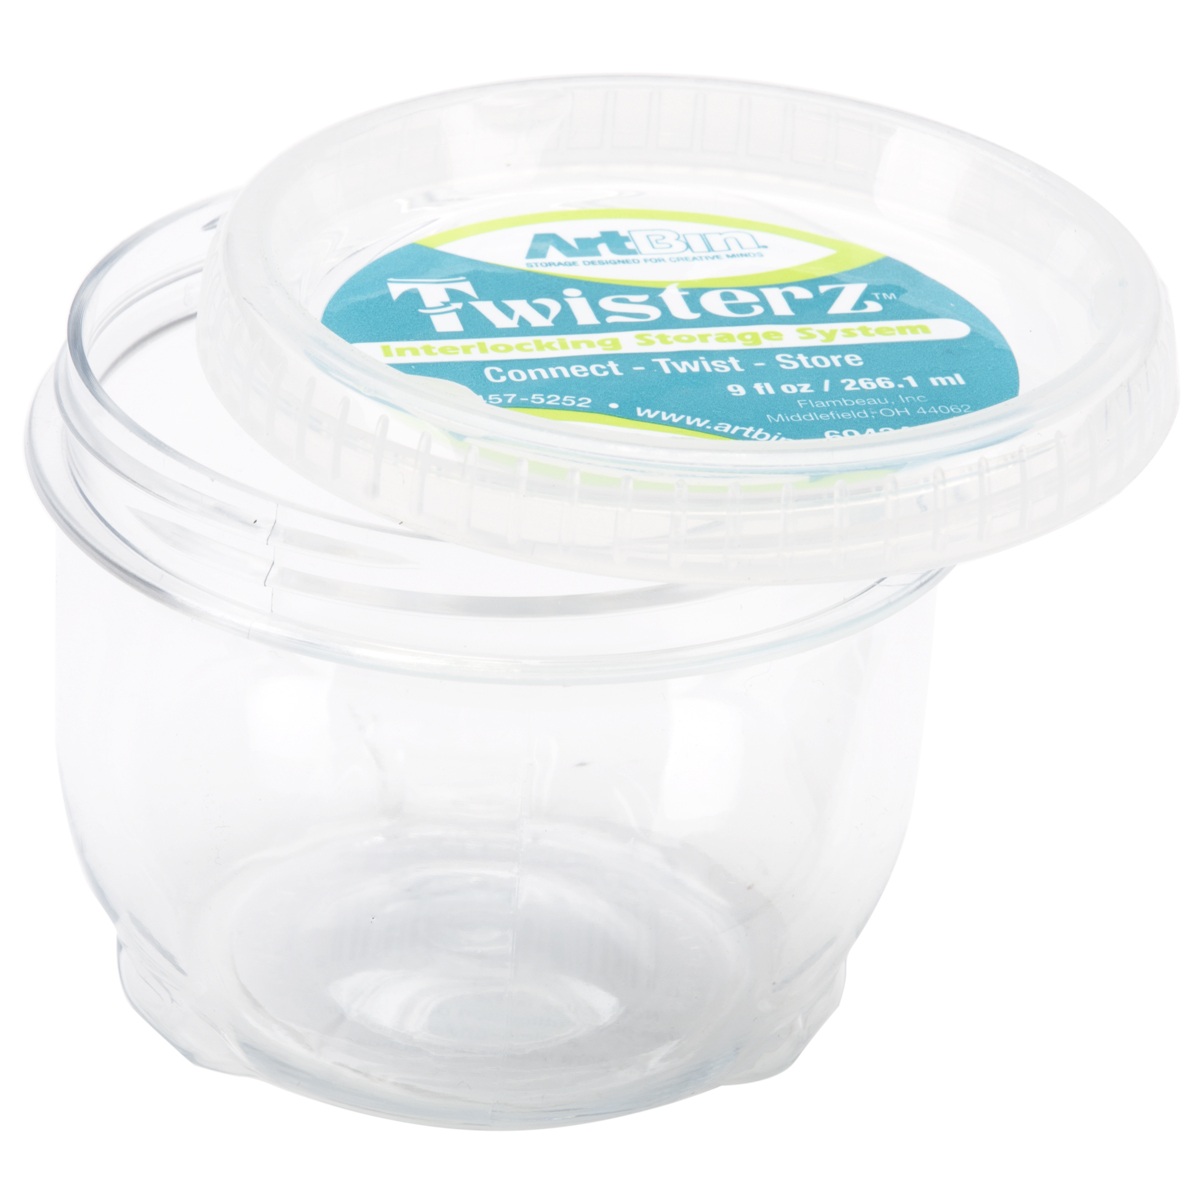 ArtBin Twisterz Jar-Large & Tall 3.5X2.875 (9fl oz)